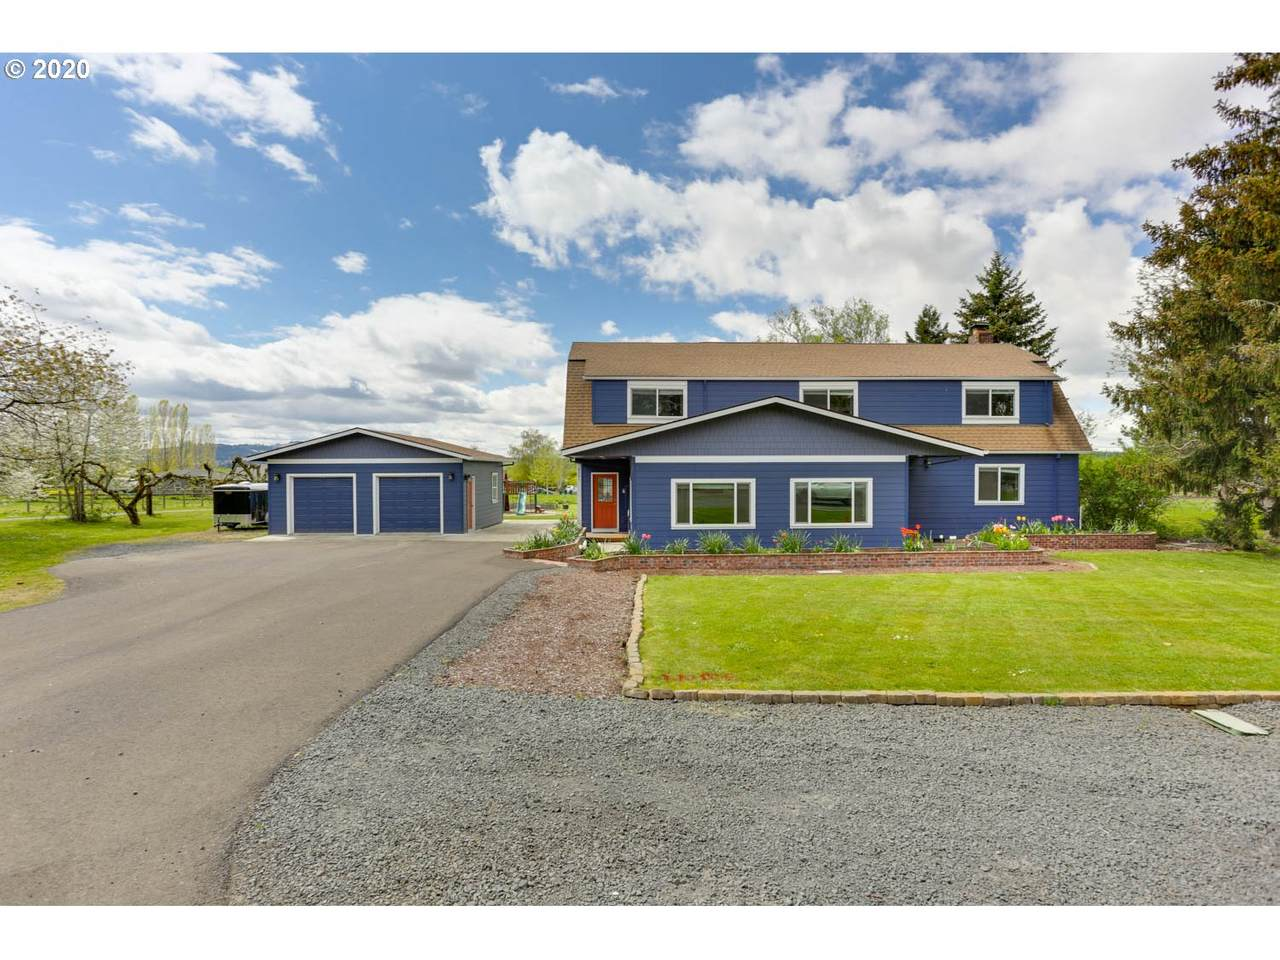 2201 Chehalem Dr - Photo 1